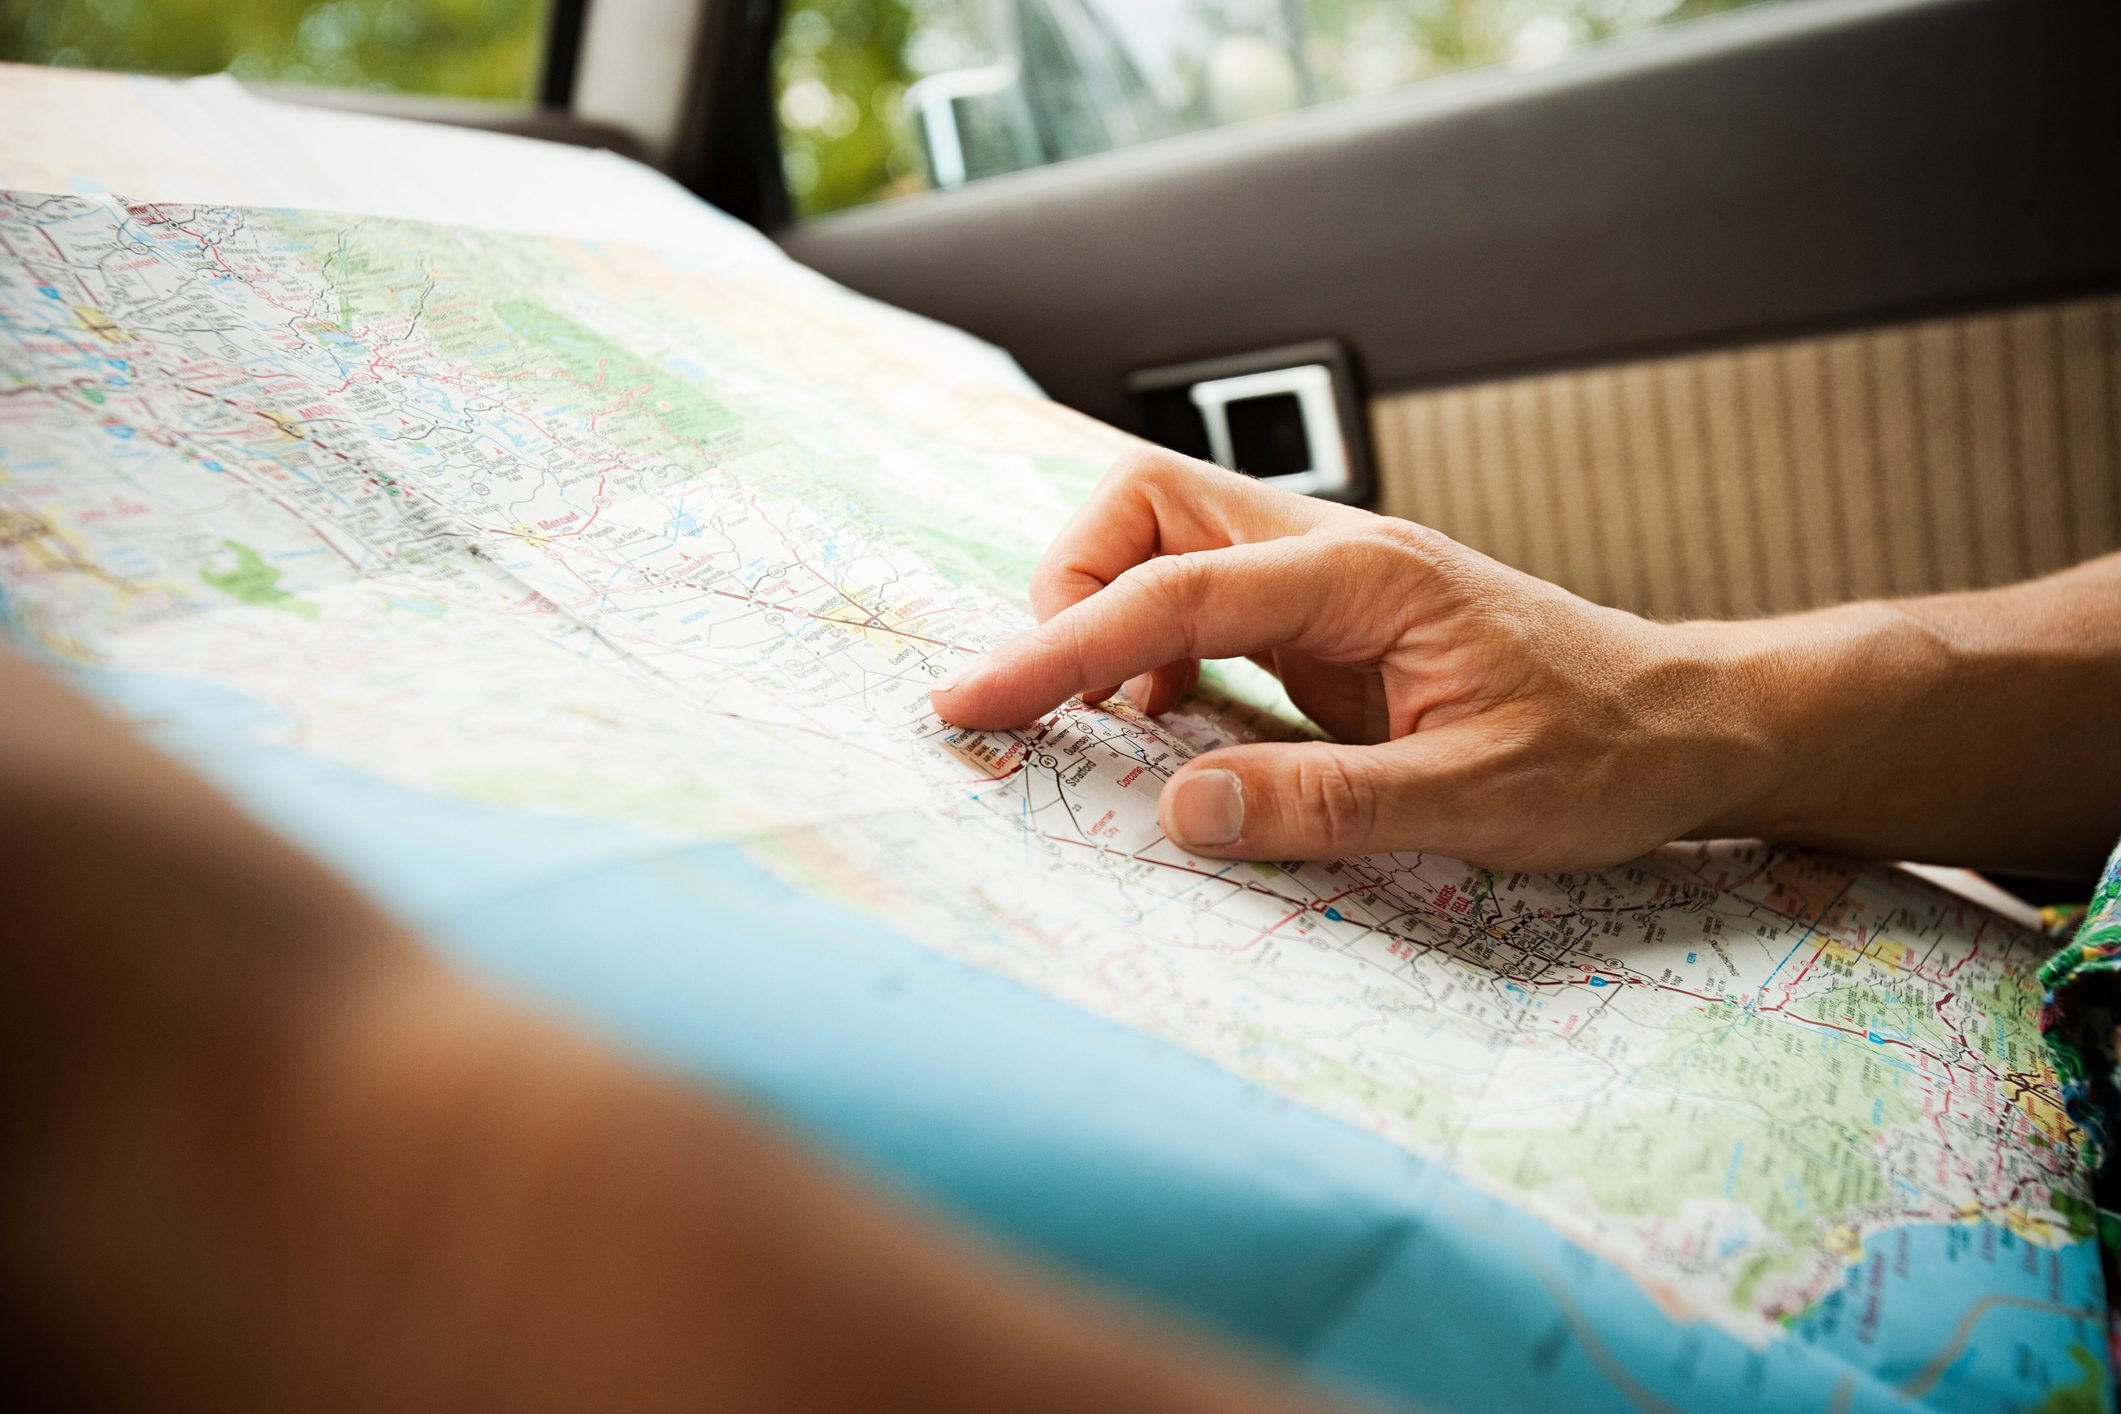 close up of hands examing a map in the car